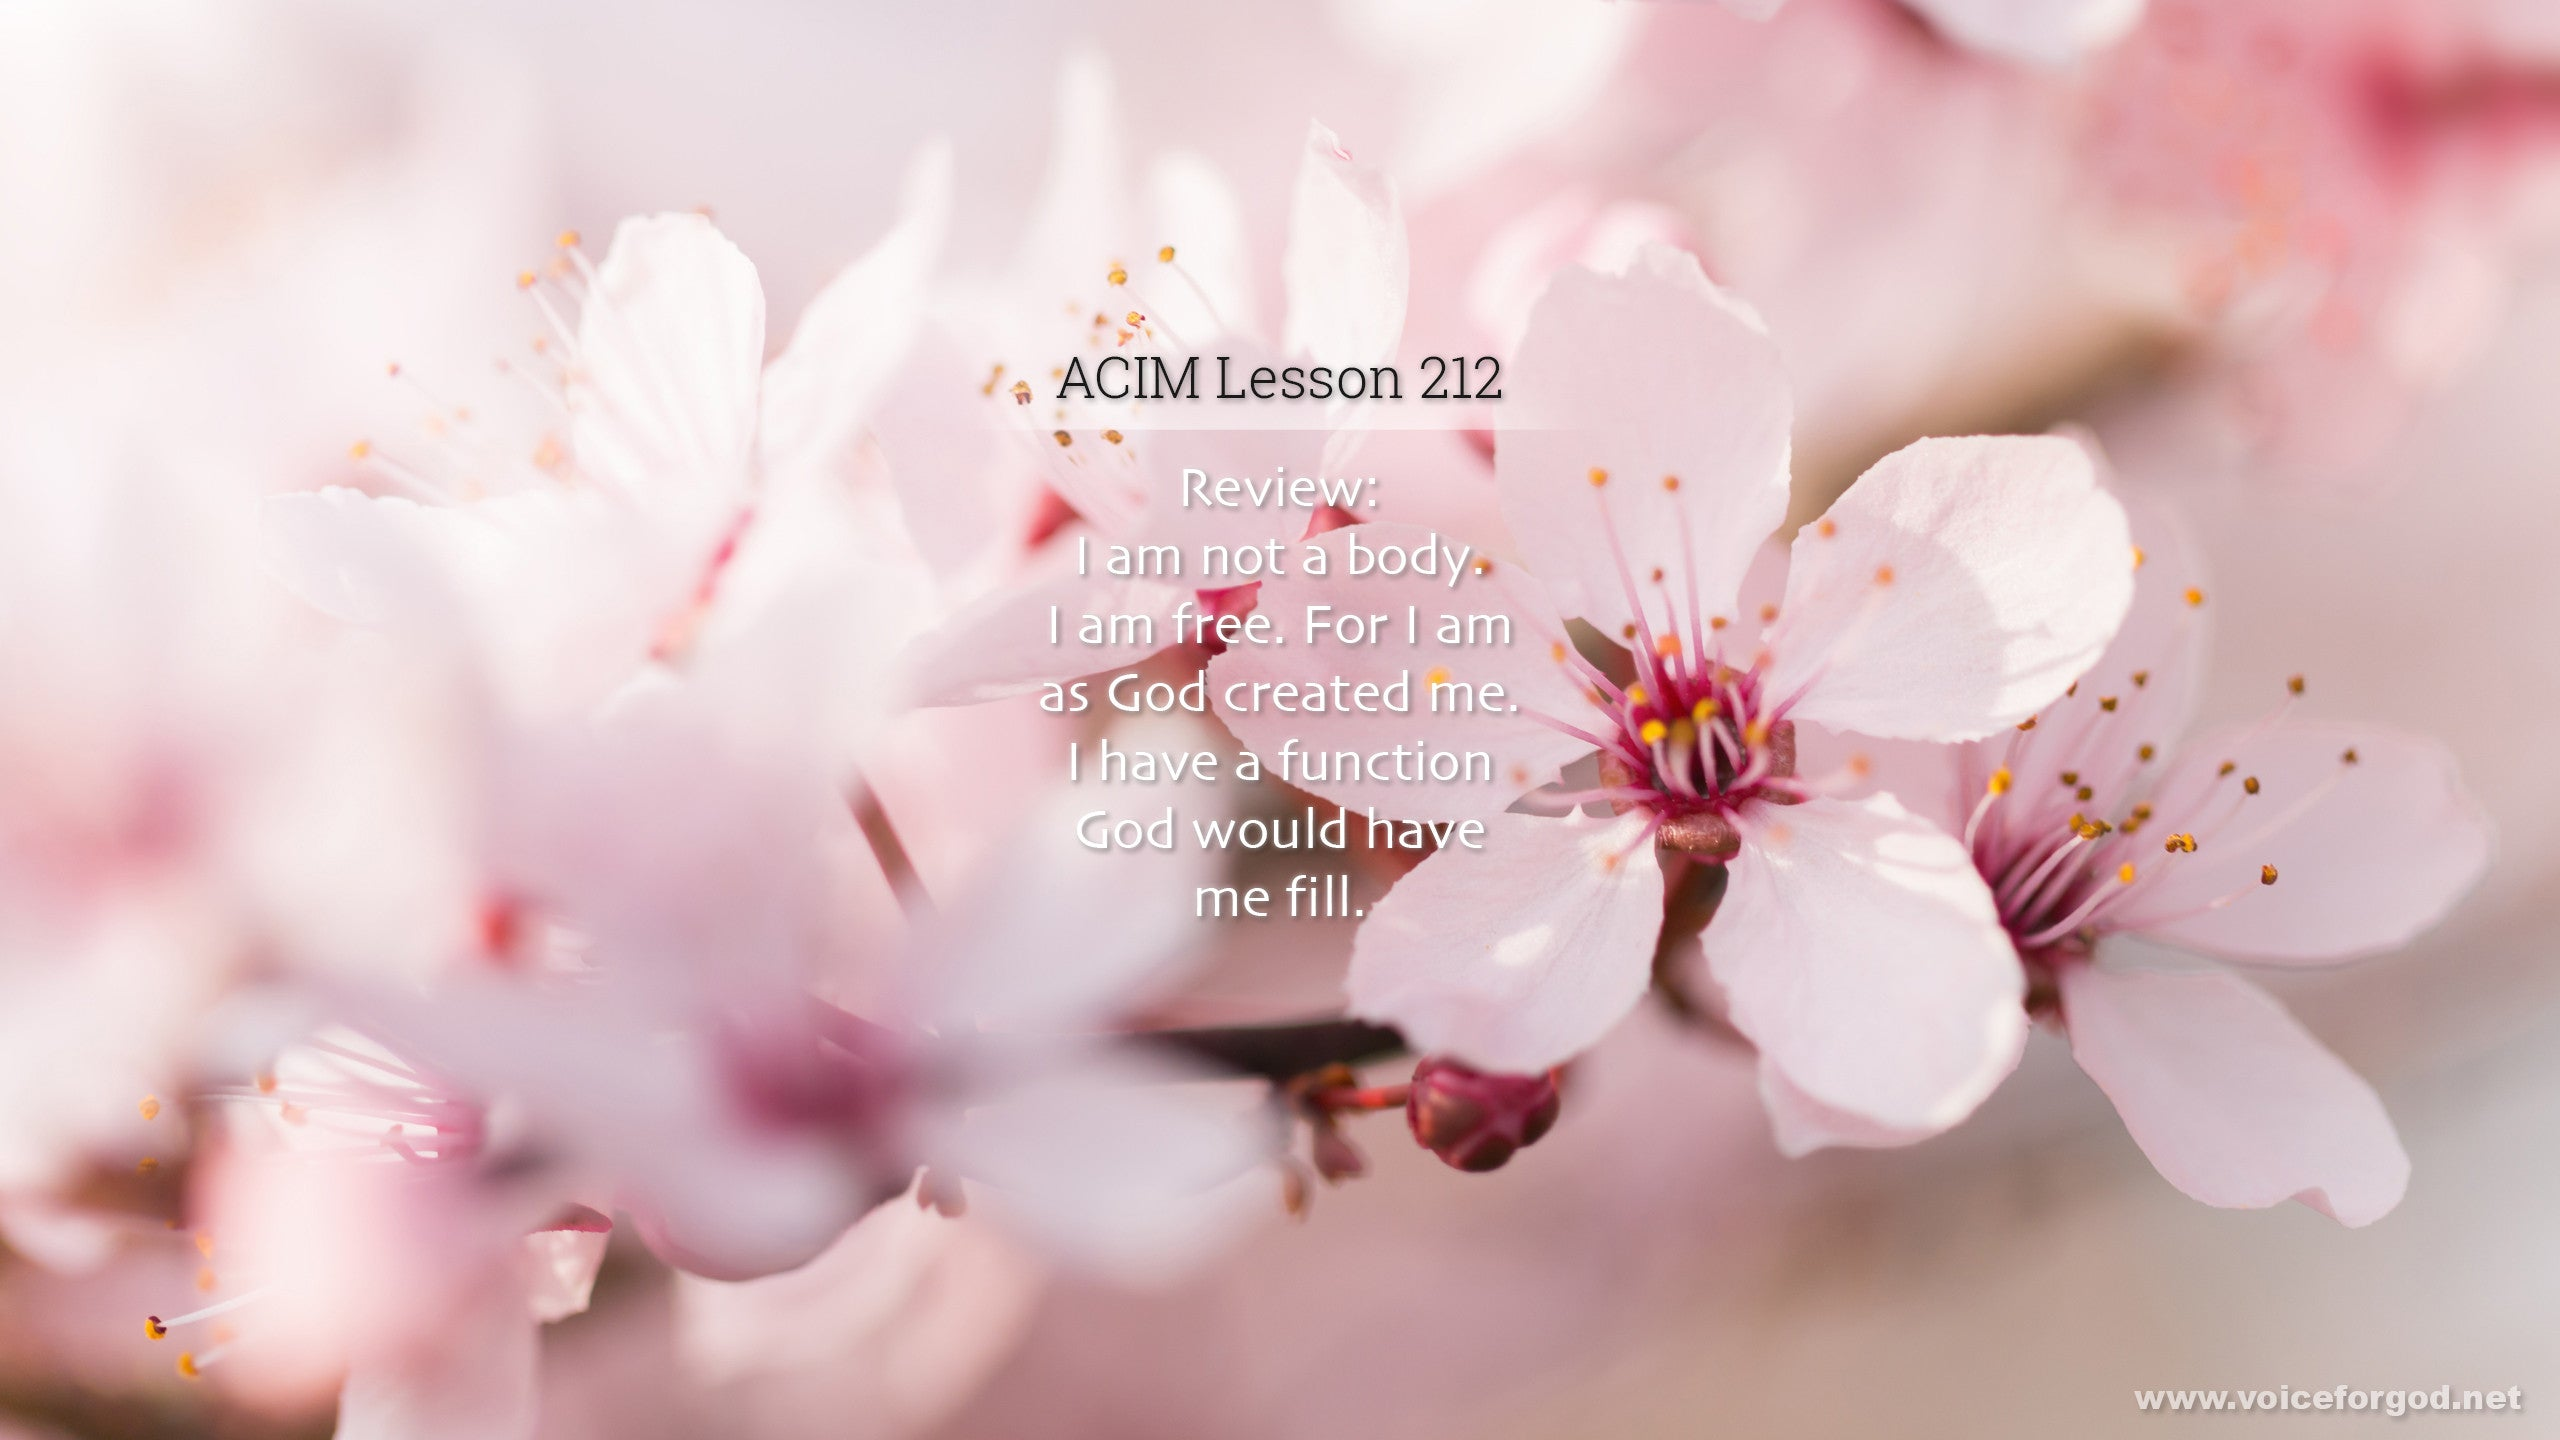 ACIM Lesson 212 - A Course in Miracles Workbook Lesson 212